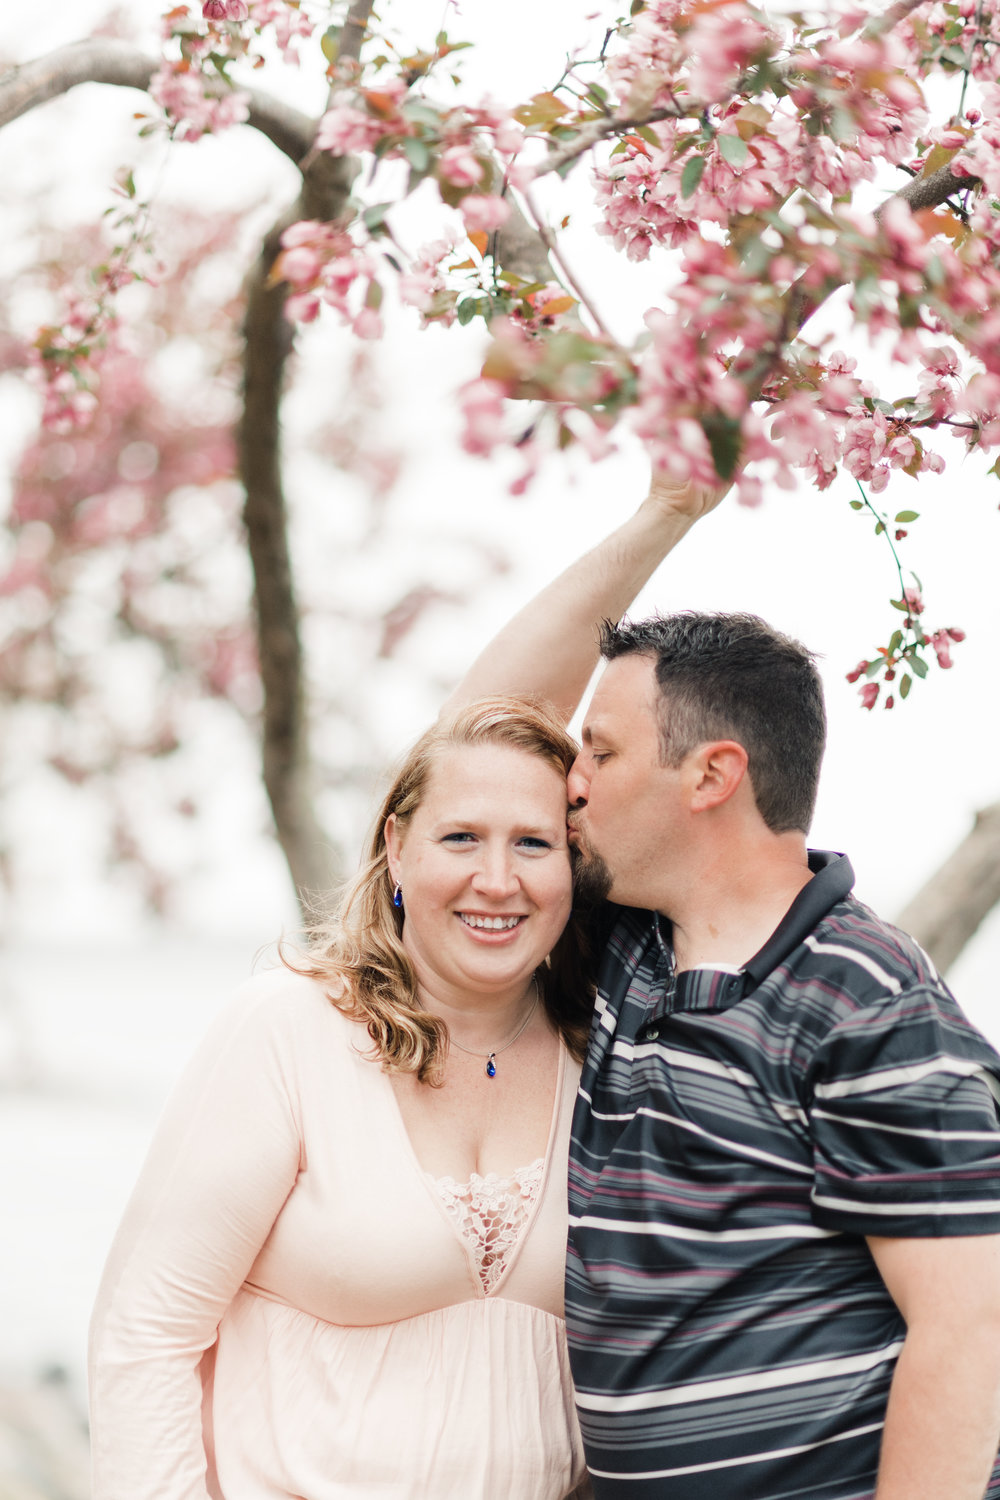 Engagement photo of a groom kissing his bride's forehead in front of a pink cherry blossom tree at James Madison Park in Madison, WI.